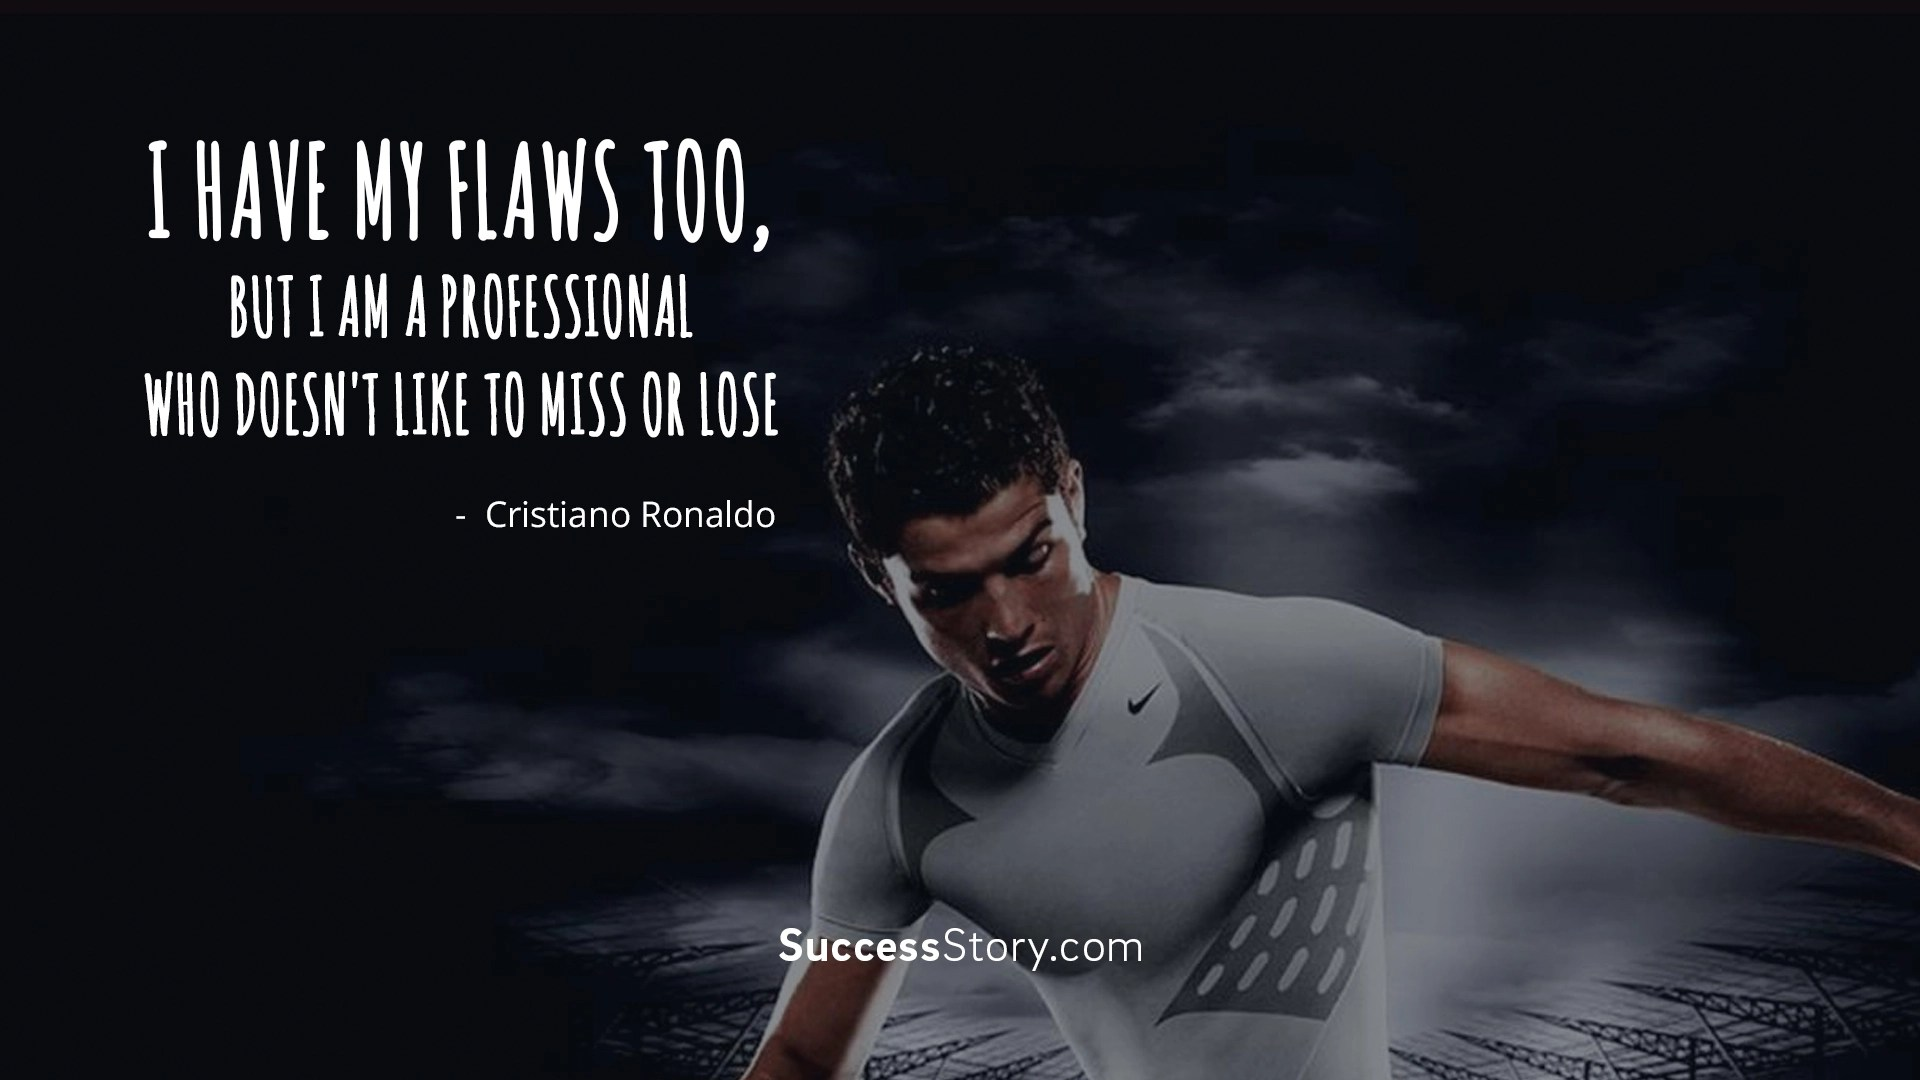 Wallpaper Think Different Quotes Cristiano Ronaldo Quotes Famous Quotes Successstory